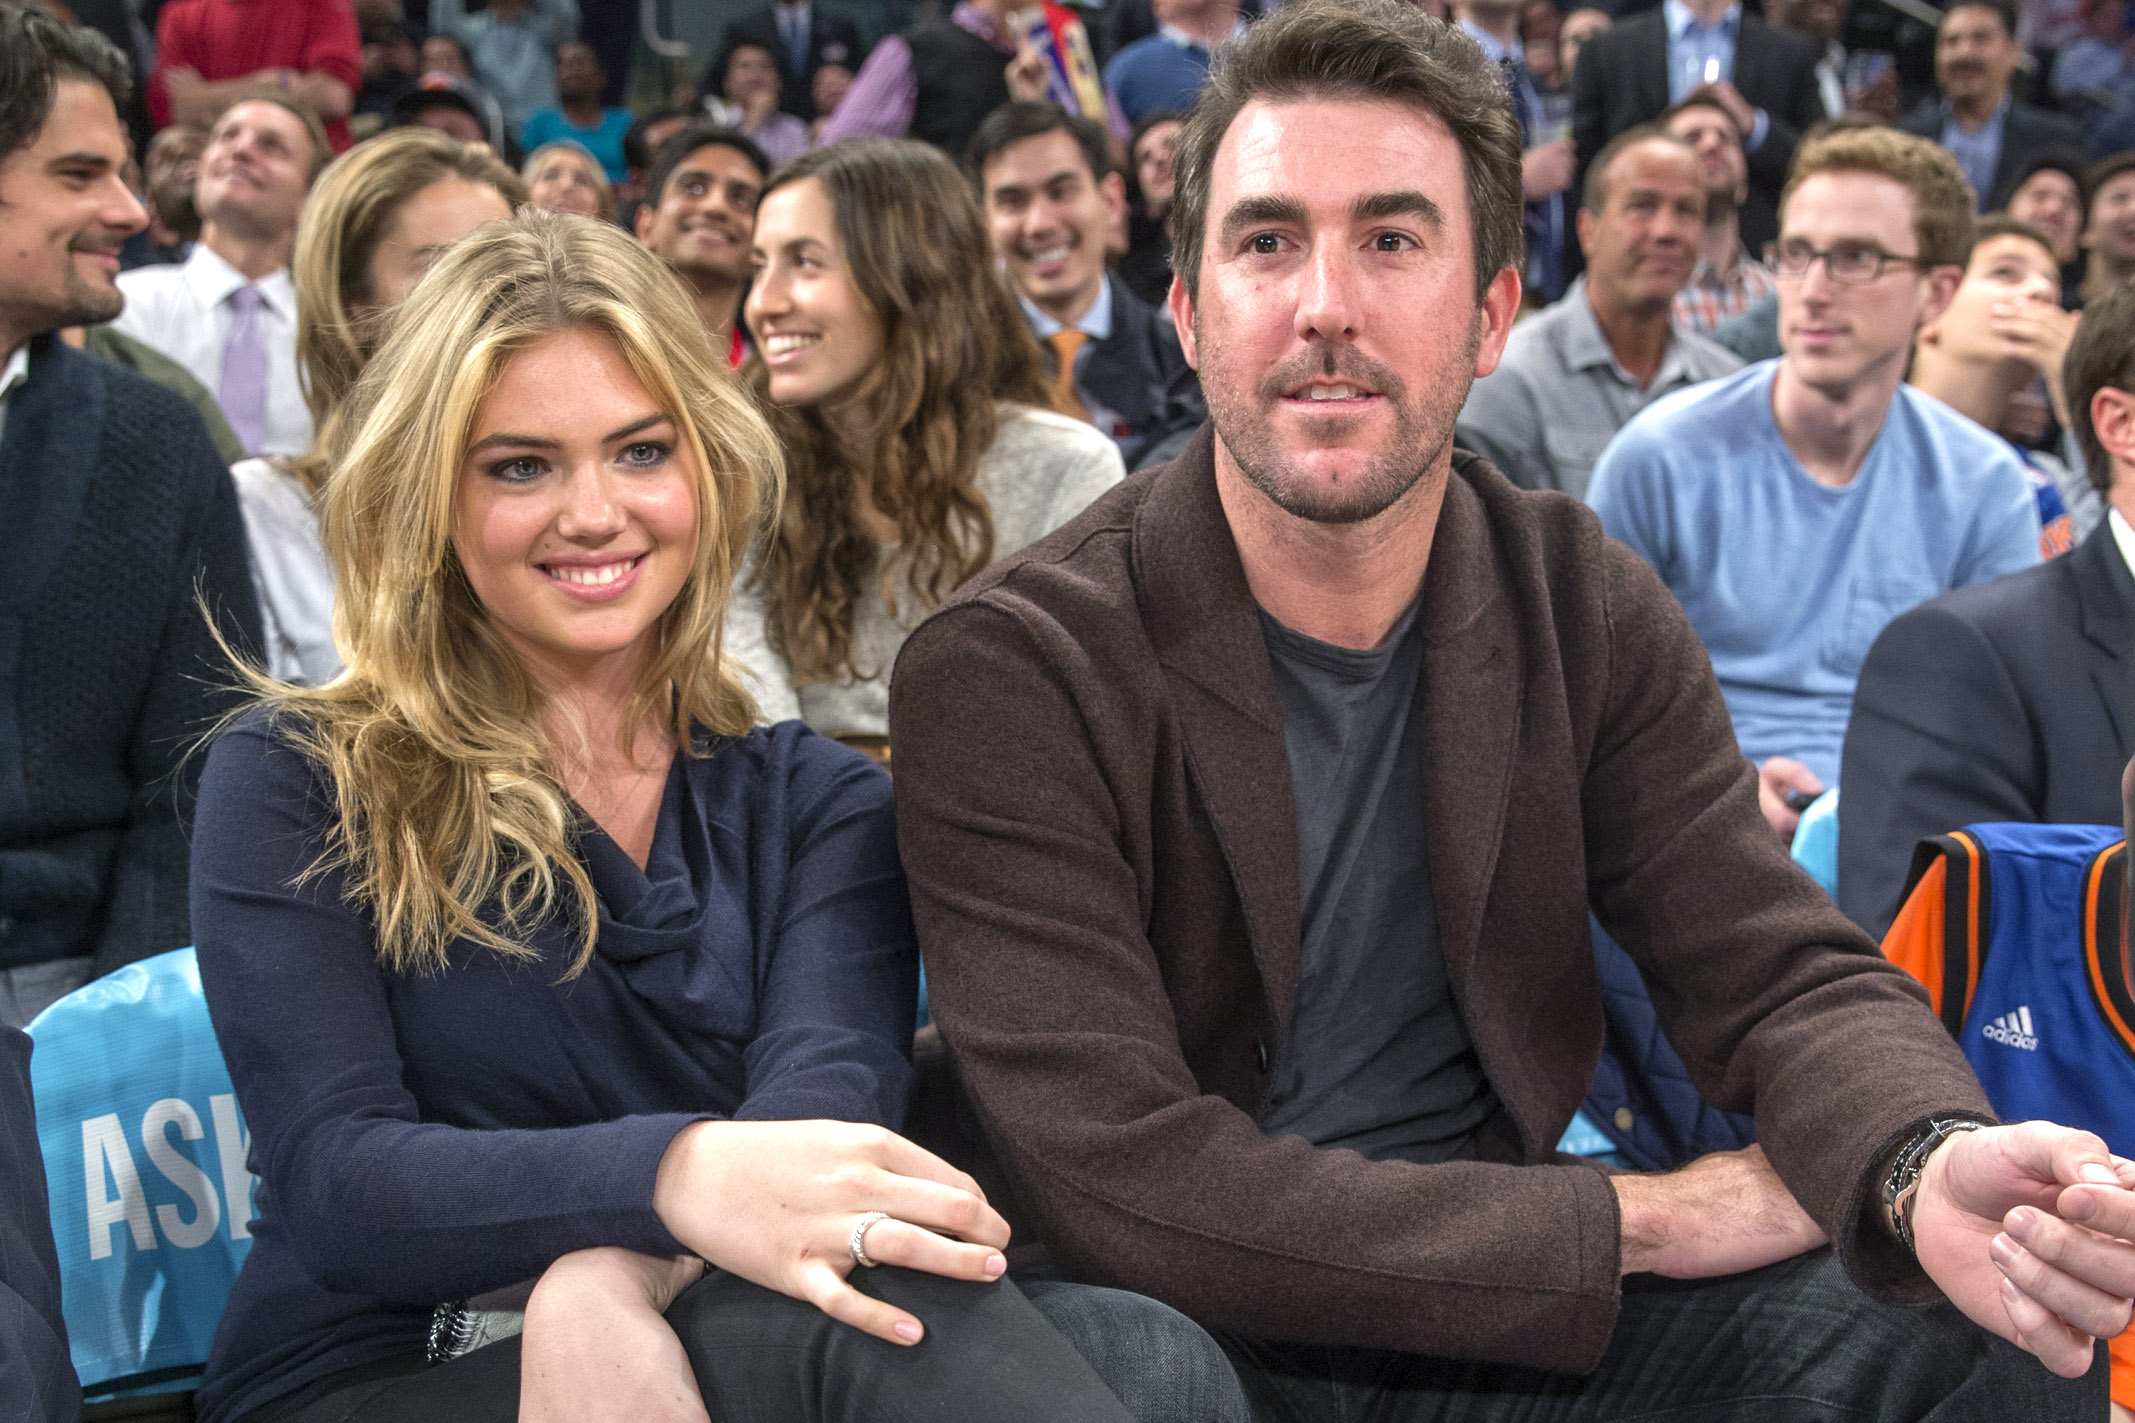 New York, NY- November 12th: New York Knicks vs Orlando Magic at Madison Square Garden: Kate Upton and her boyfriend Justin Verlander pitcher for the Detroit Tigers sit court side as they attend tonights game. Wednesday, November 12th, 2014. (Photo by Anthony Causi)